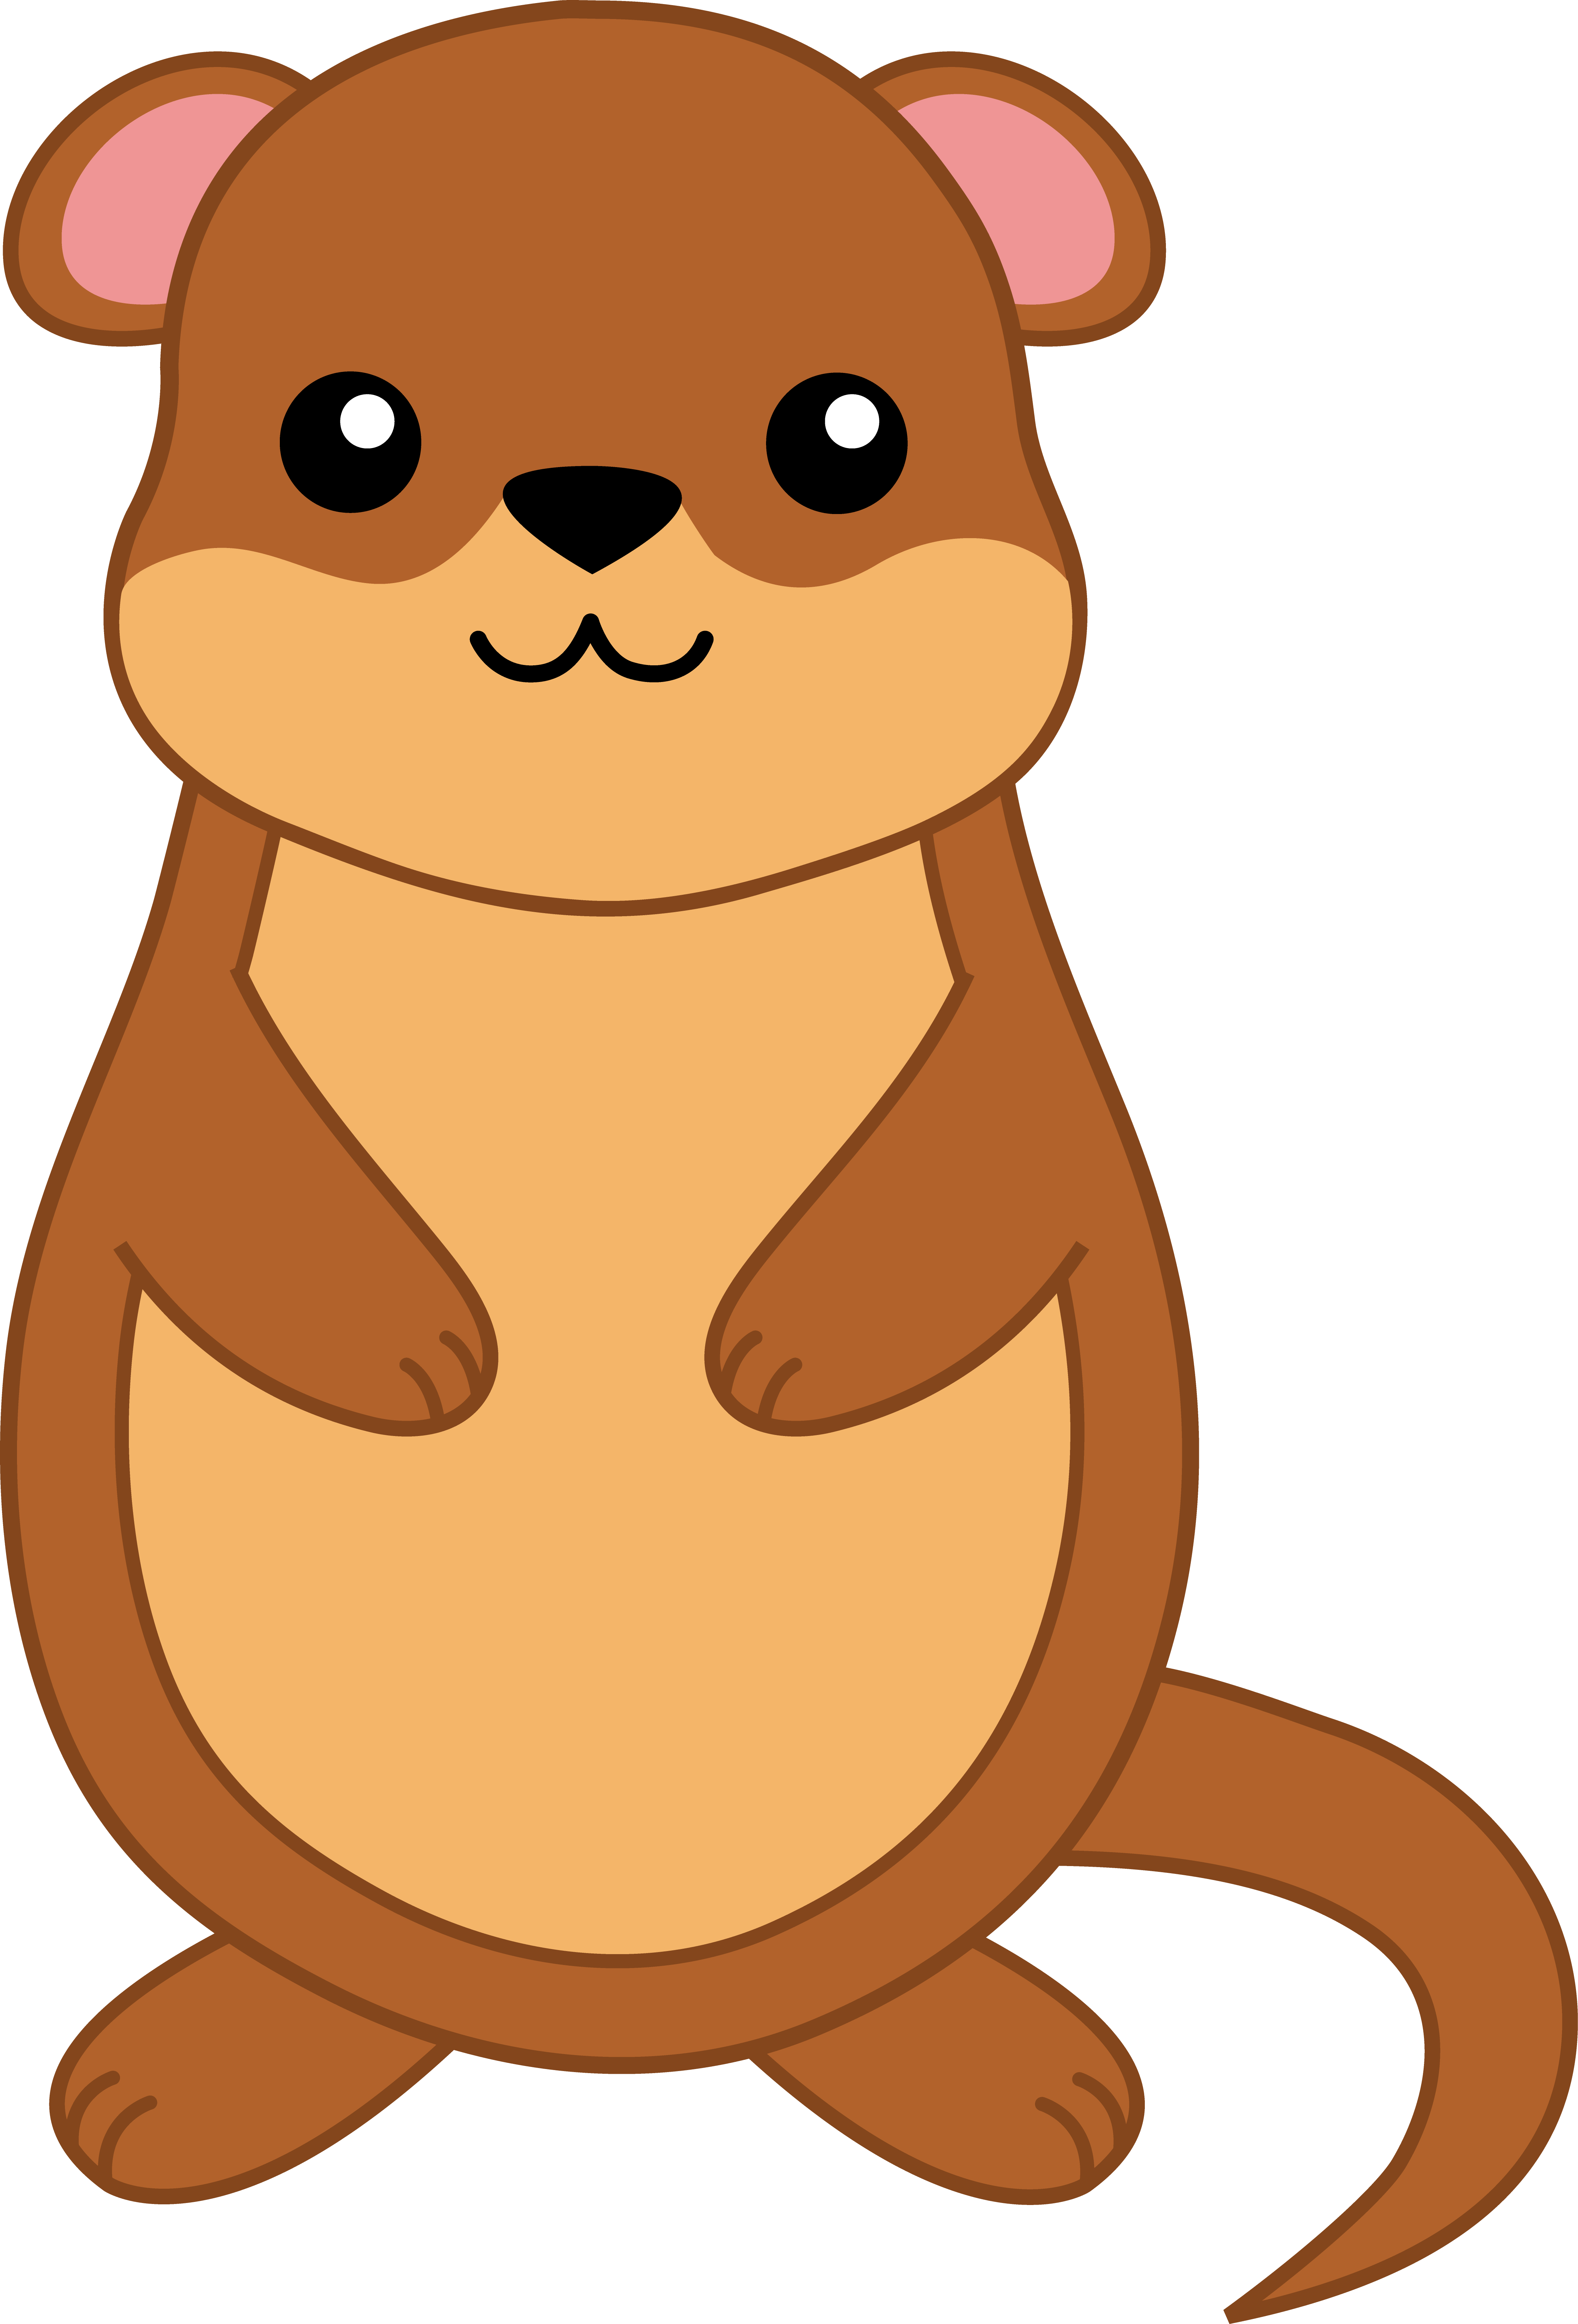 Free Groundhog Pictures Cartoon, Download Free Clip Art.